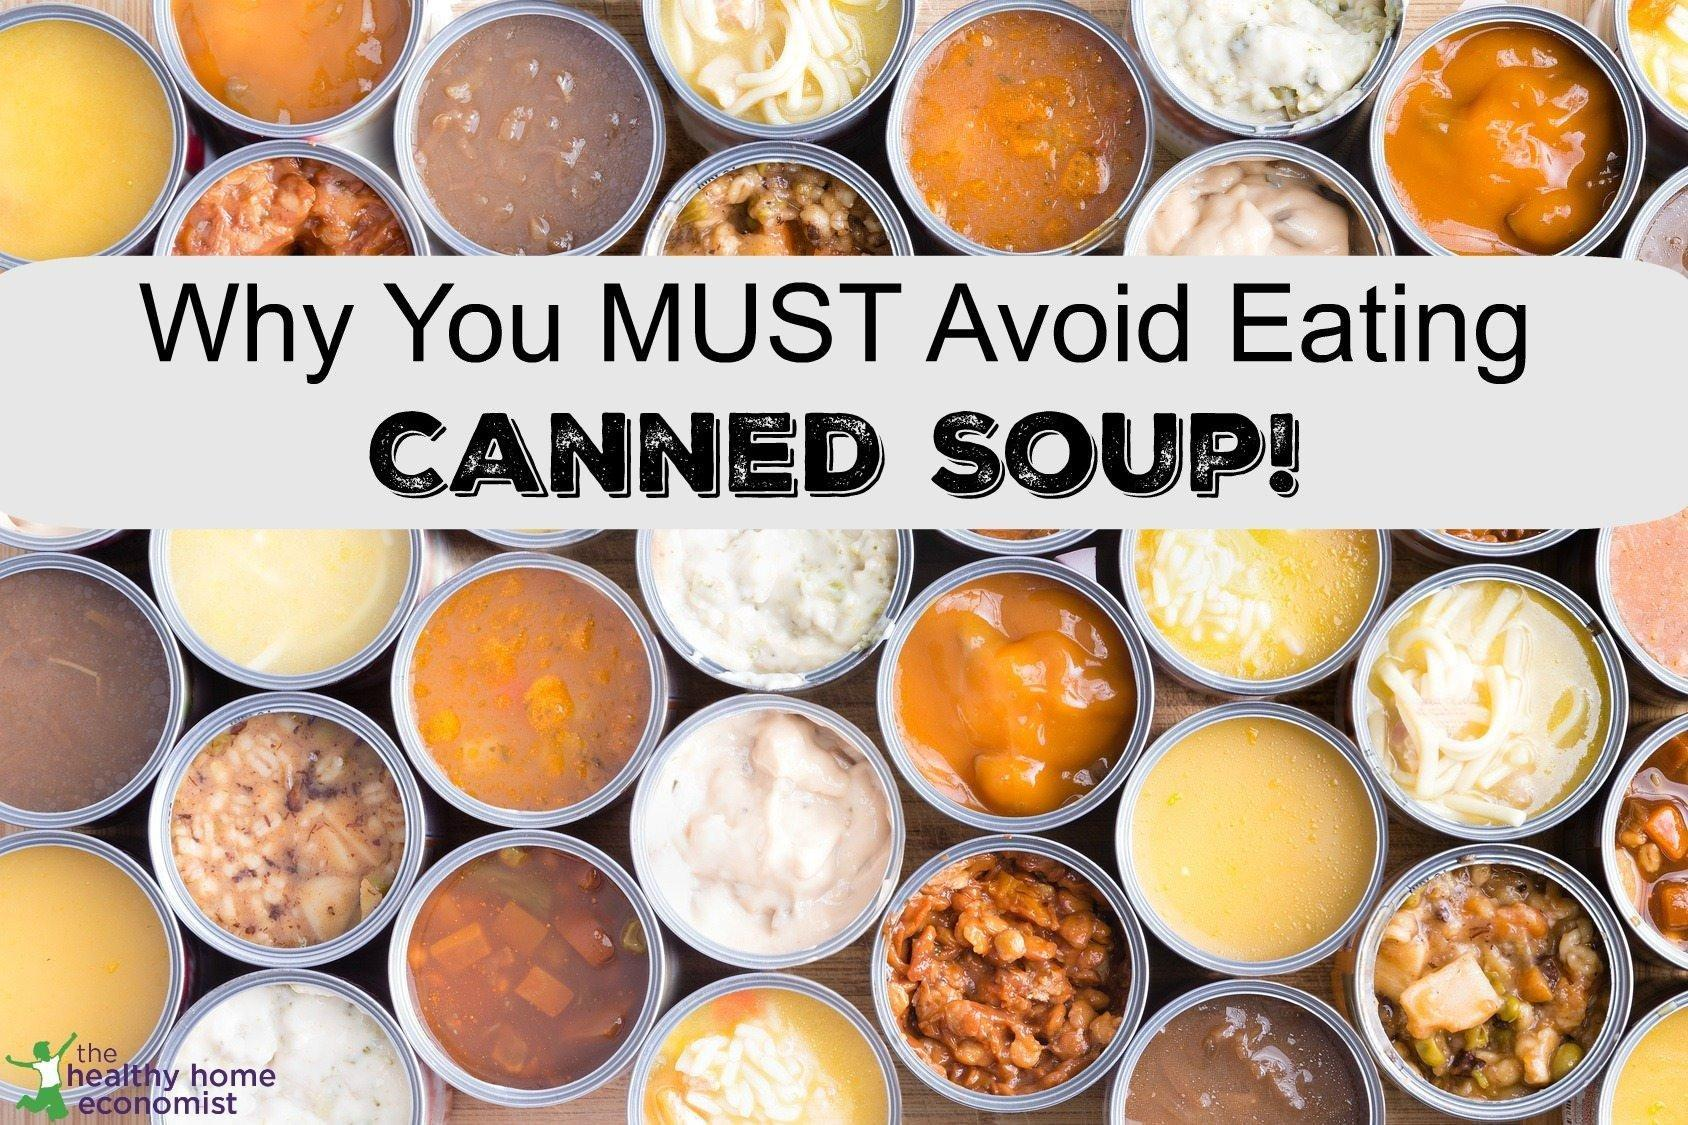 Why Eating Canned Soup Risks Major Health Problems